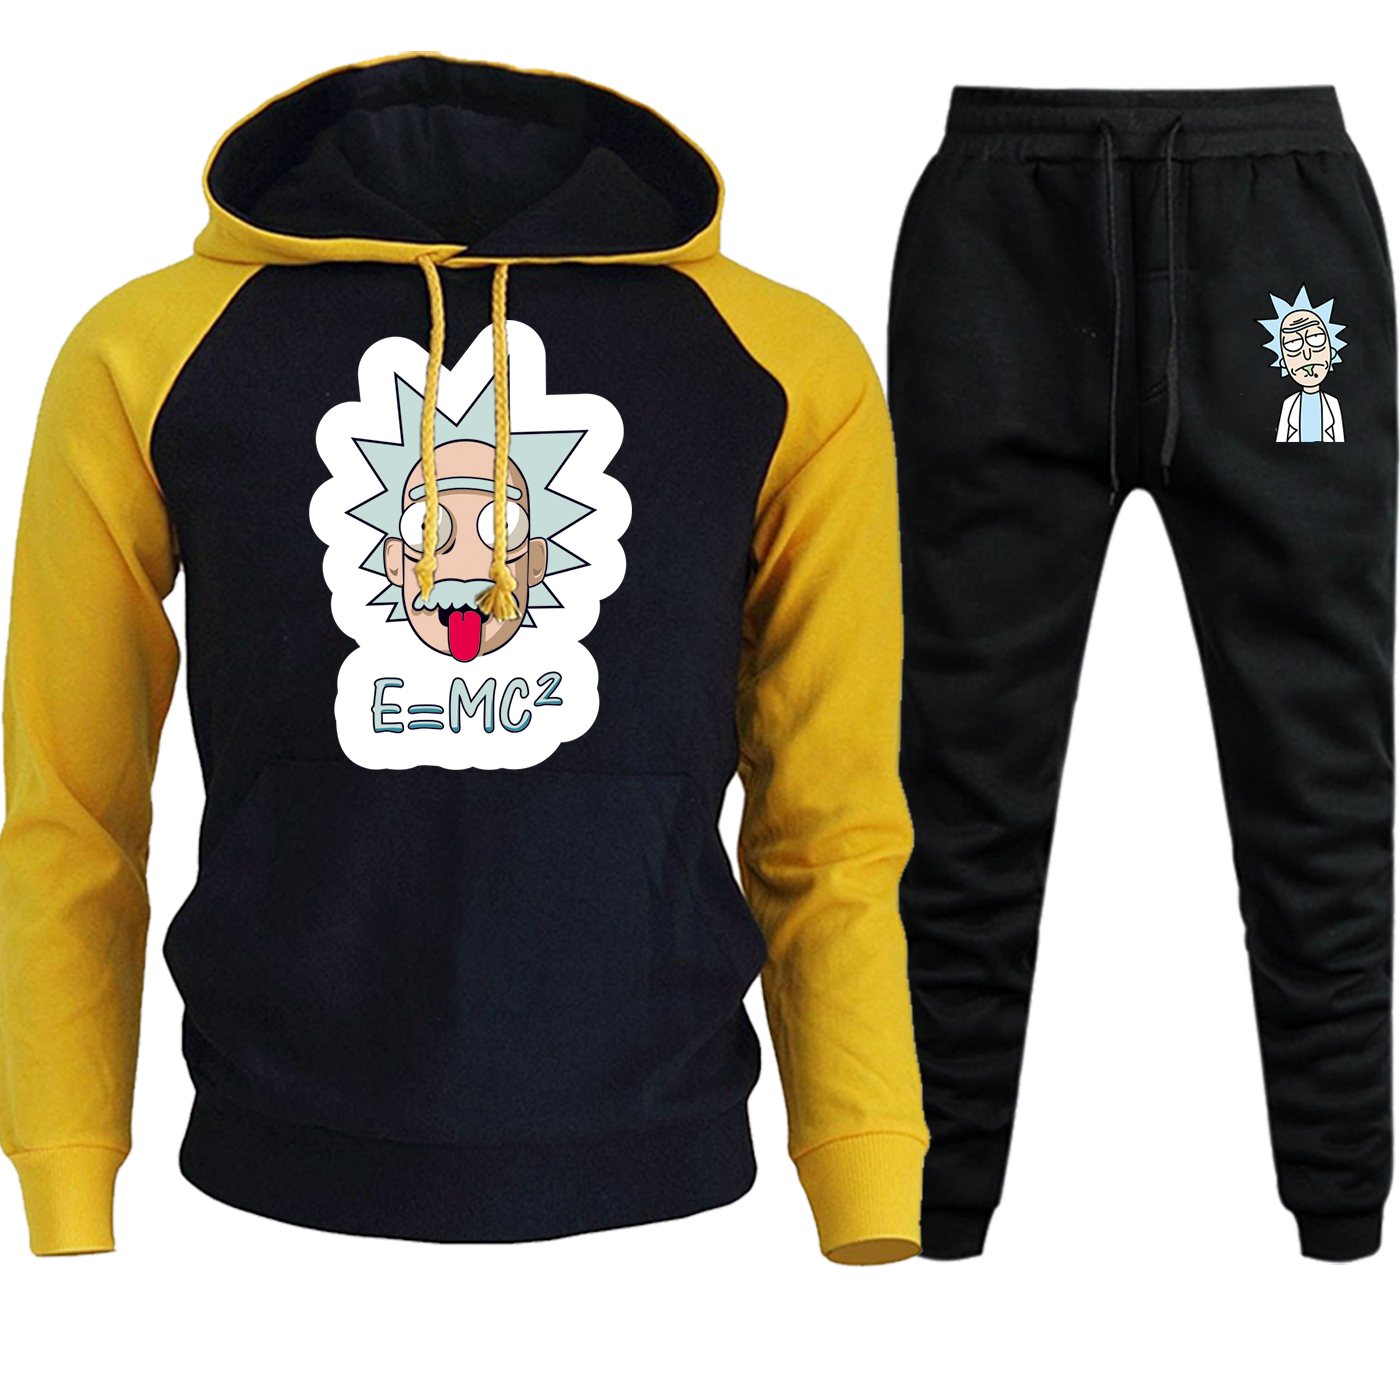 Rick And Morty New Autumn Winter 2019 Hoodies Men Raglan Streetwear Cartoon Printed Suit Casual Fleece Hooded+Pants 2 Piece Set